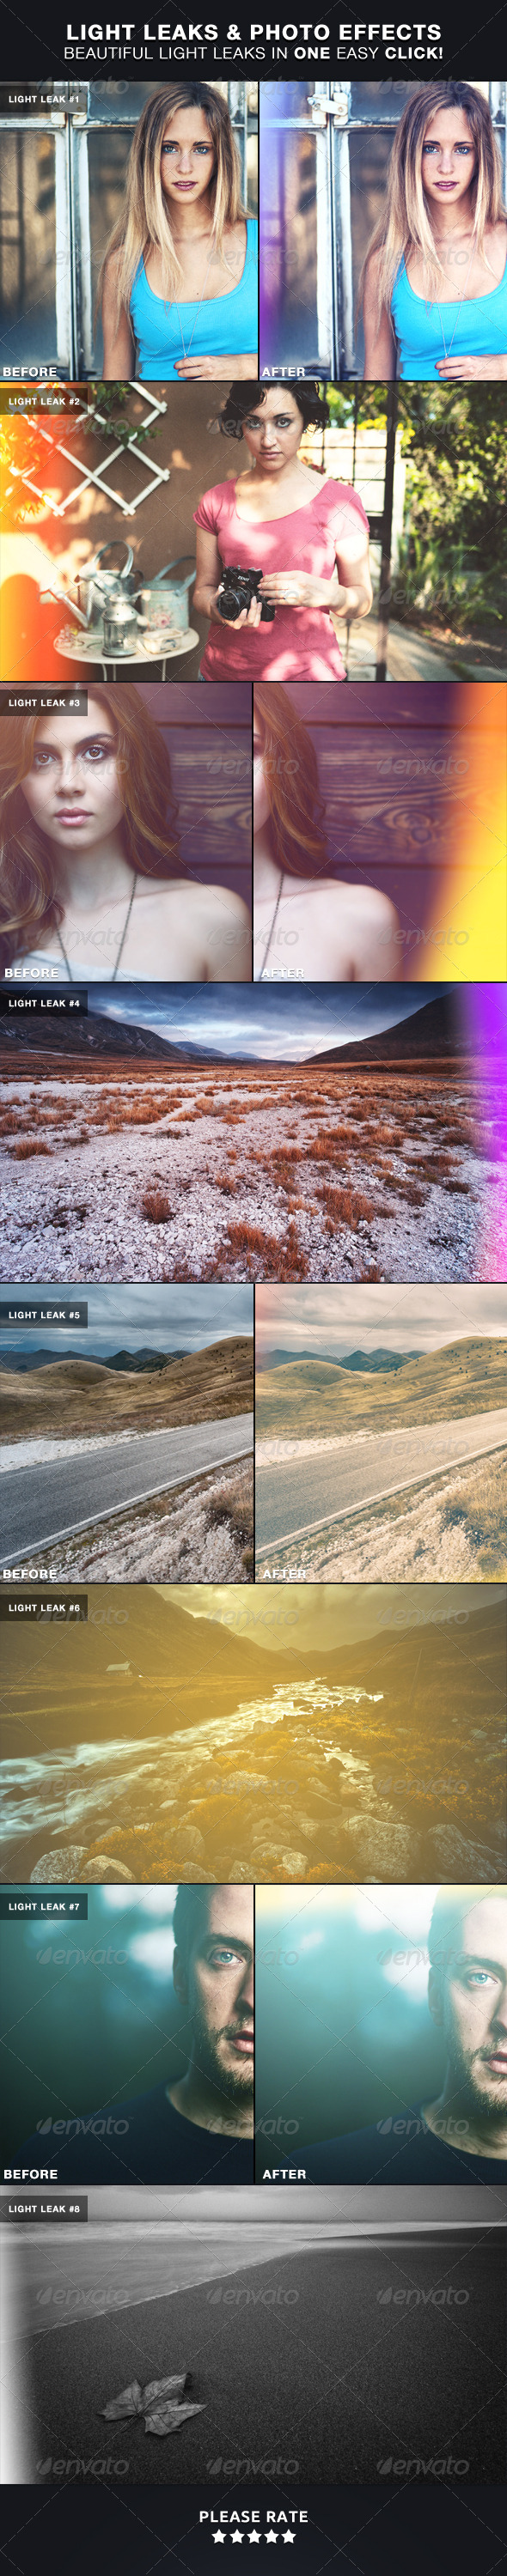 GraphicRiver Light Leaks & Photo Effects Photoshop Actions 4013438